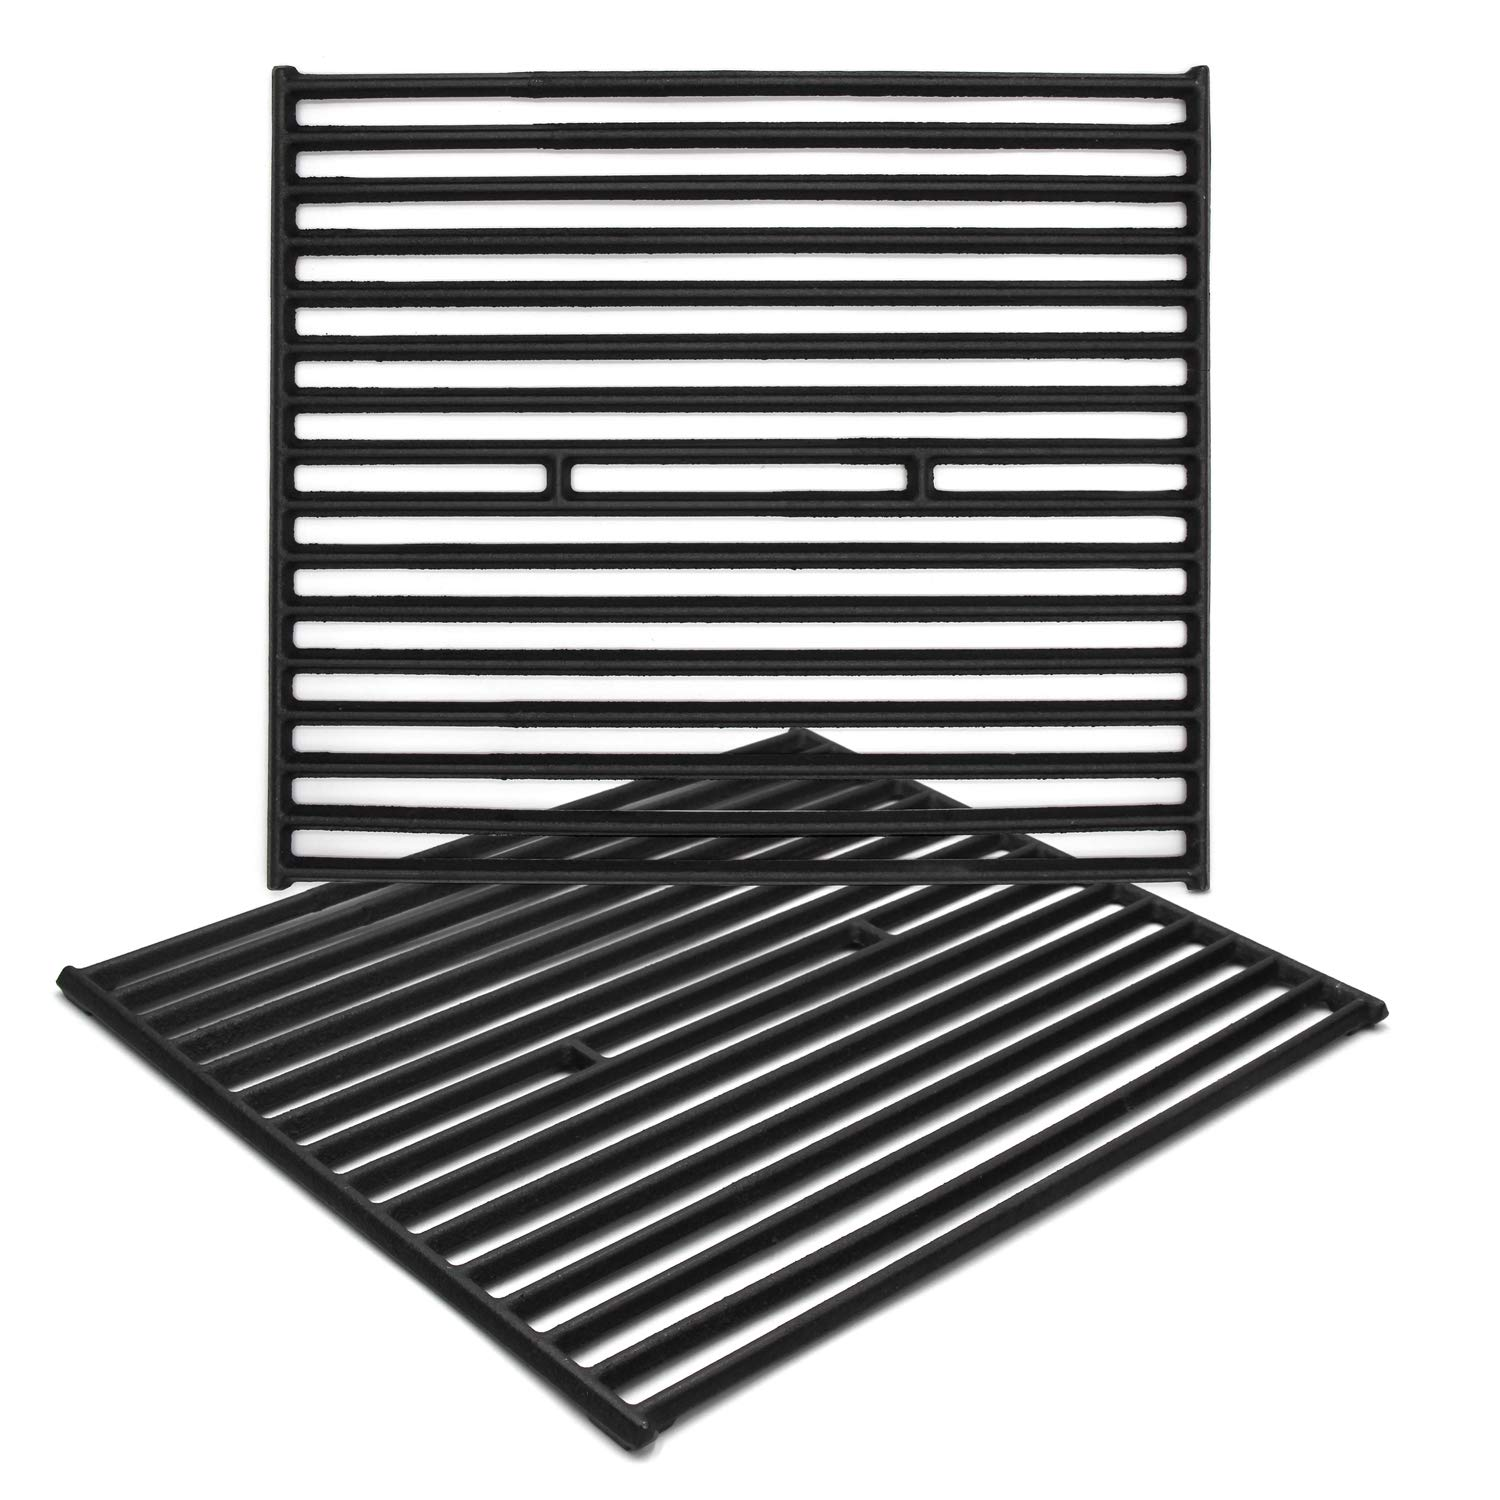 Hongso PCD362 Matt Cast Iron Cooking Grid Replacement for Select Gas Grill Models by Broil King, Broil-Mate and Others, Set of 2, Upgrate Version, Better Quality, Smaller Gaps by Hongso